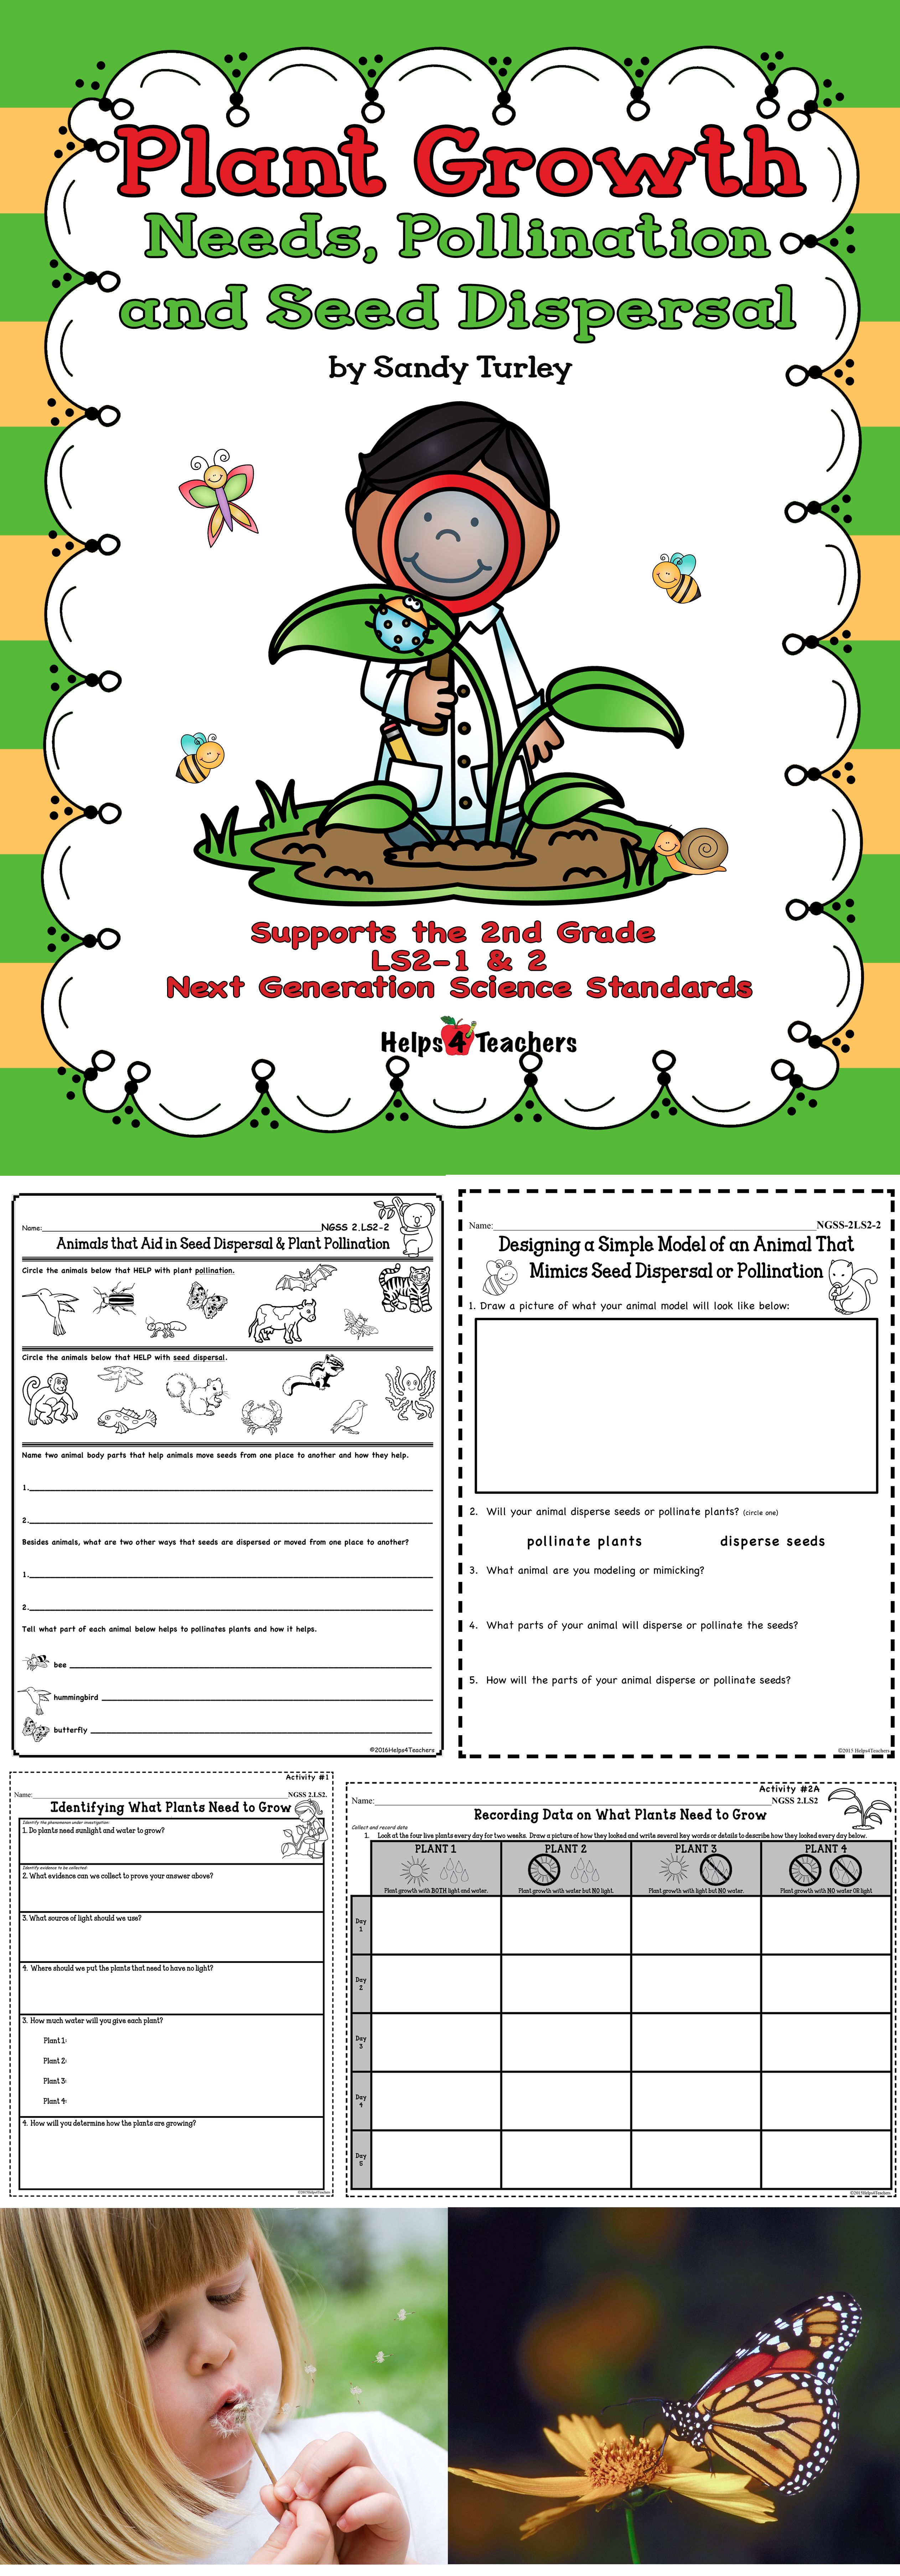 Wonderful 7 Activities To Aid In Teaching The 2nd Grade Next Generation Science Sta Second Grade Science Next Generation Science Standards Science Classroom [ 7230 x 2526 Pixel ]